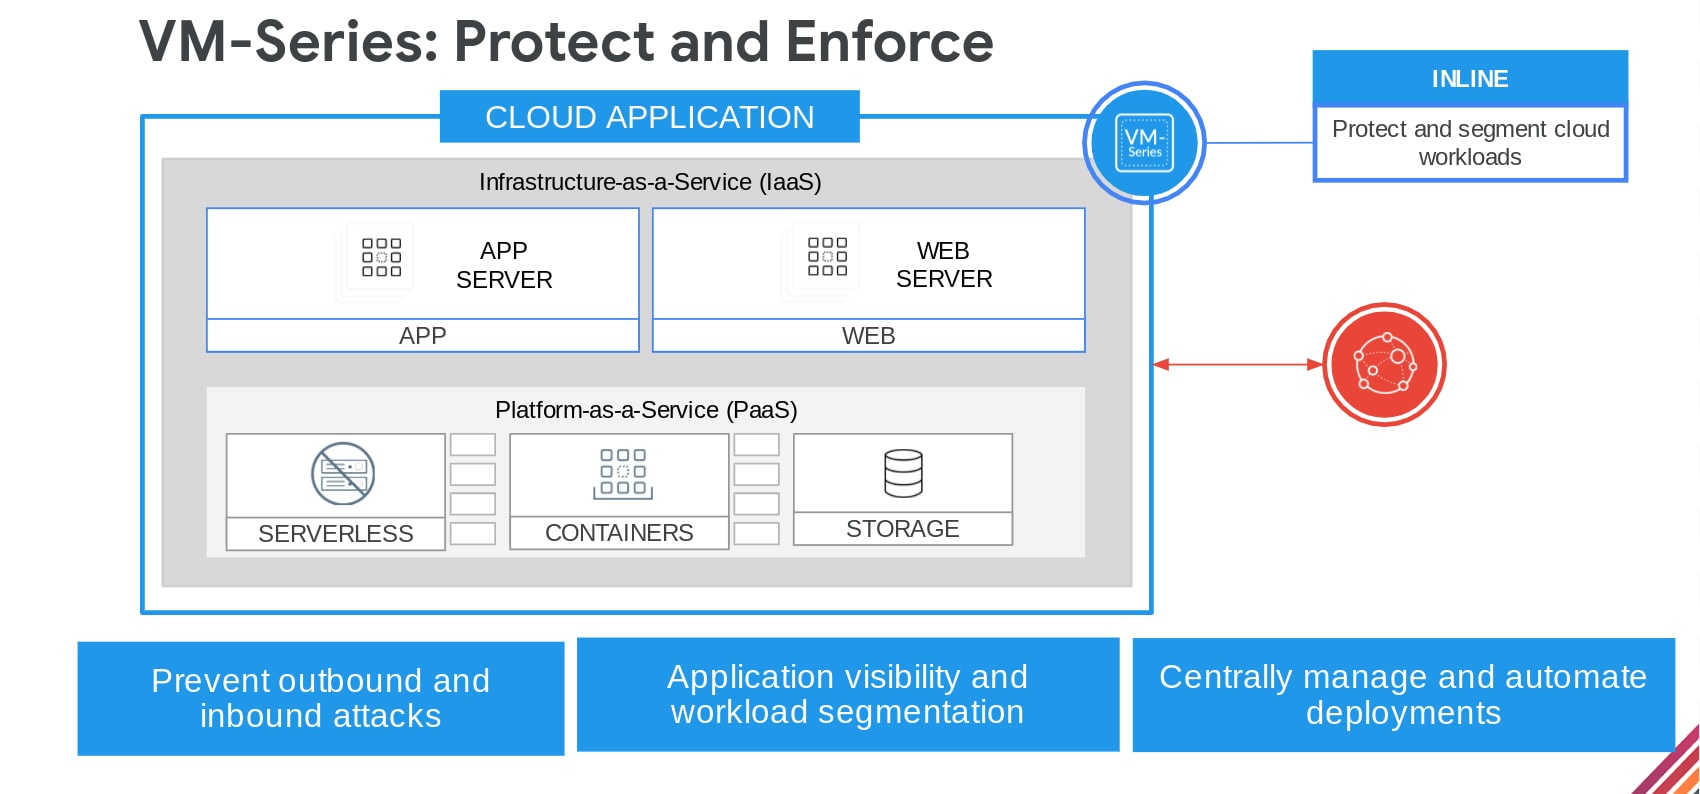 VM-Series: Protect and Enforce. This illustrates the flow of this process, including preventing outbound and inbound attacks, applications visibility and workload segmentation, and centrally managing and automating deployments throughout the software development supply chain.